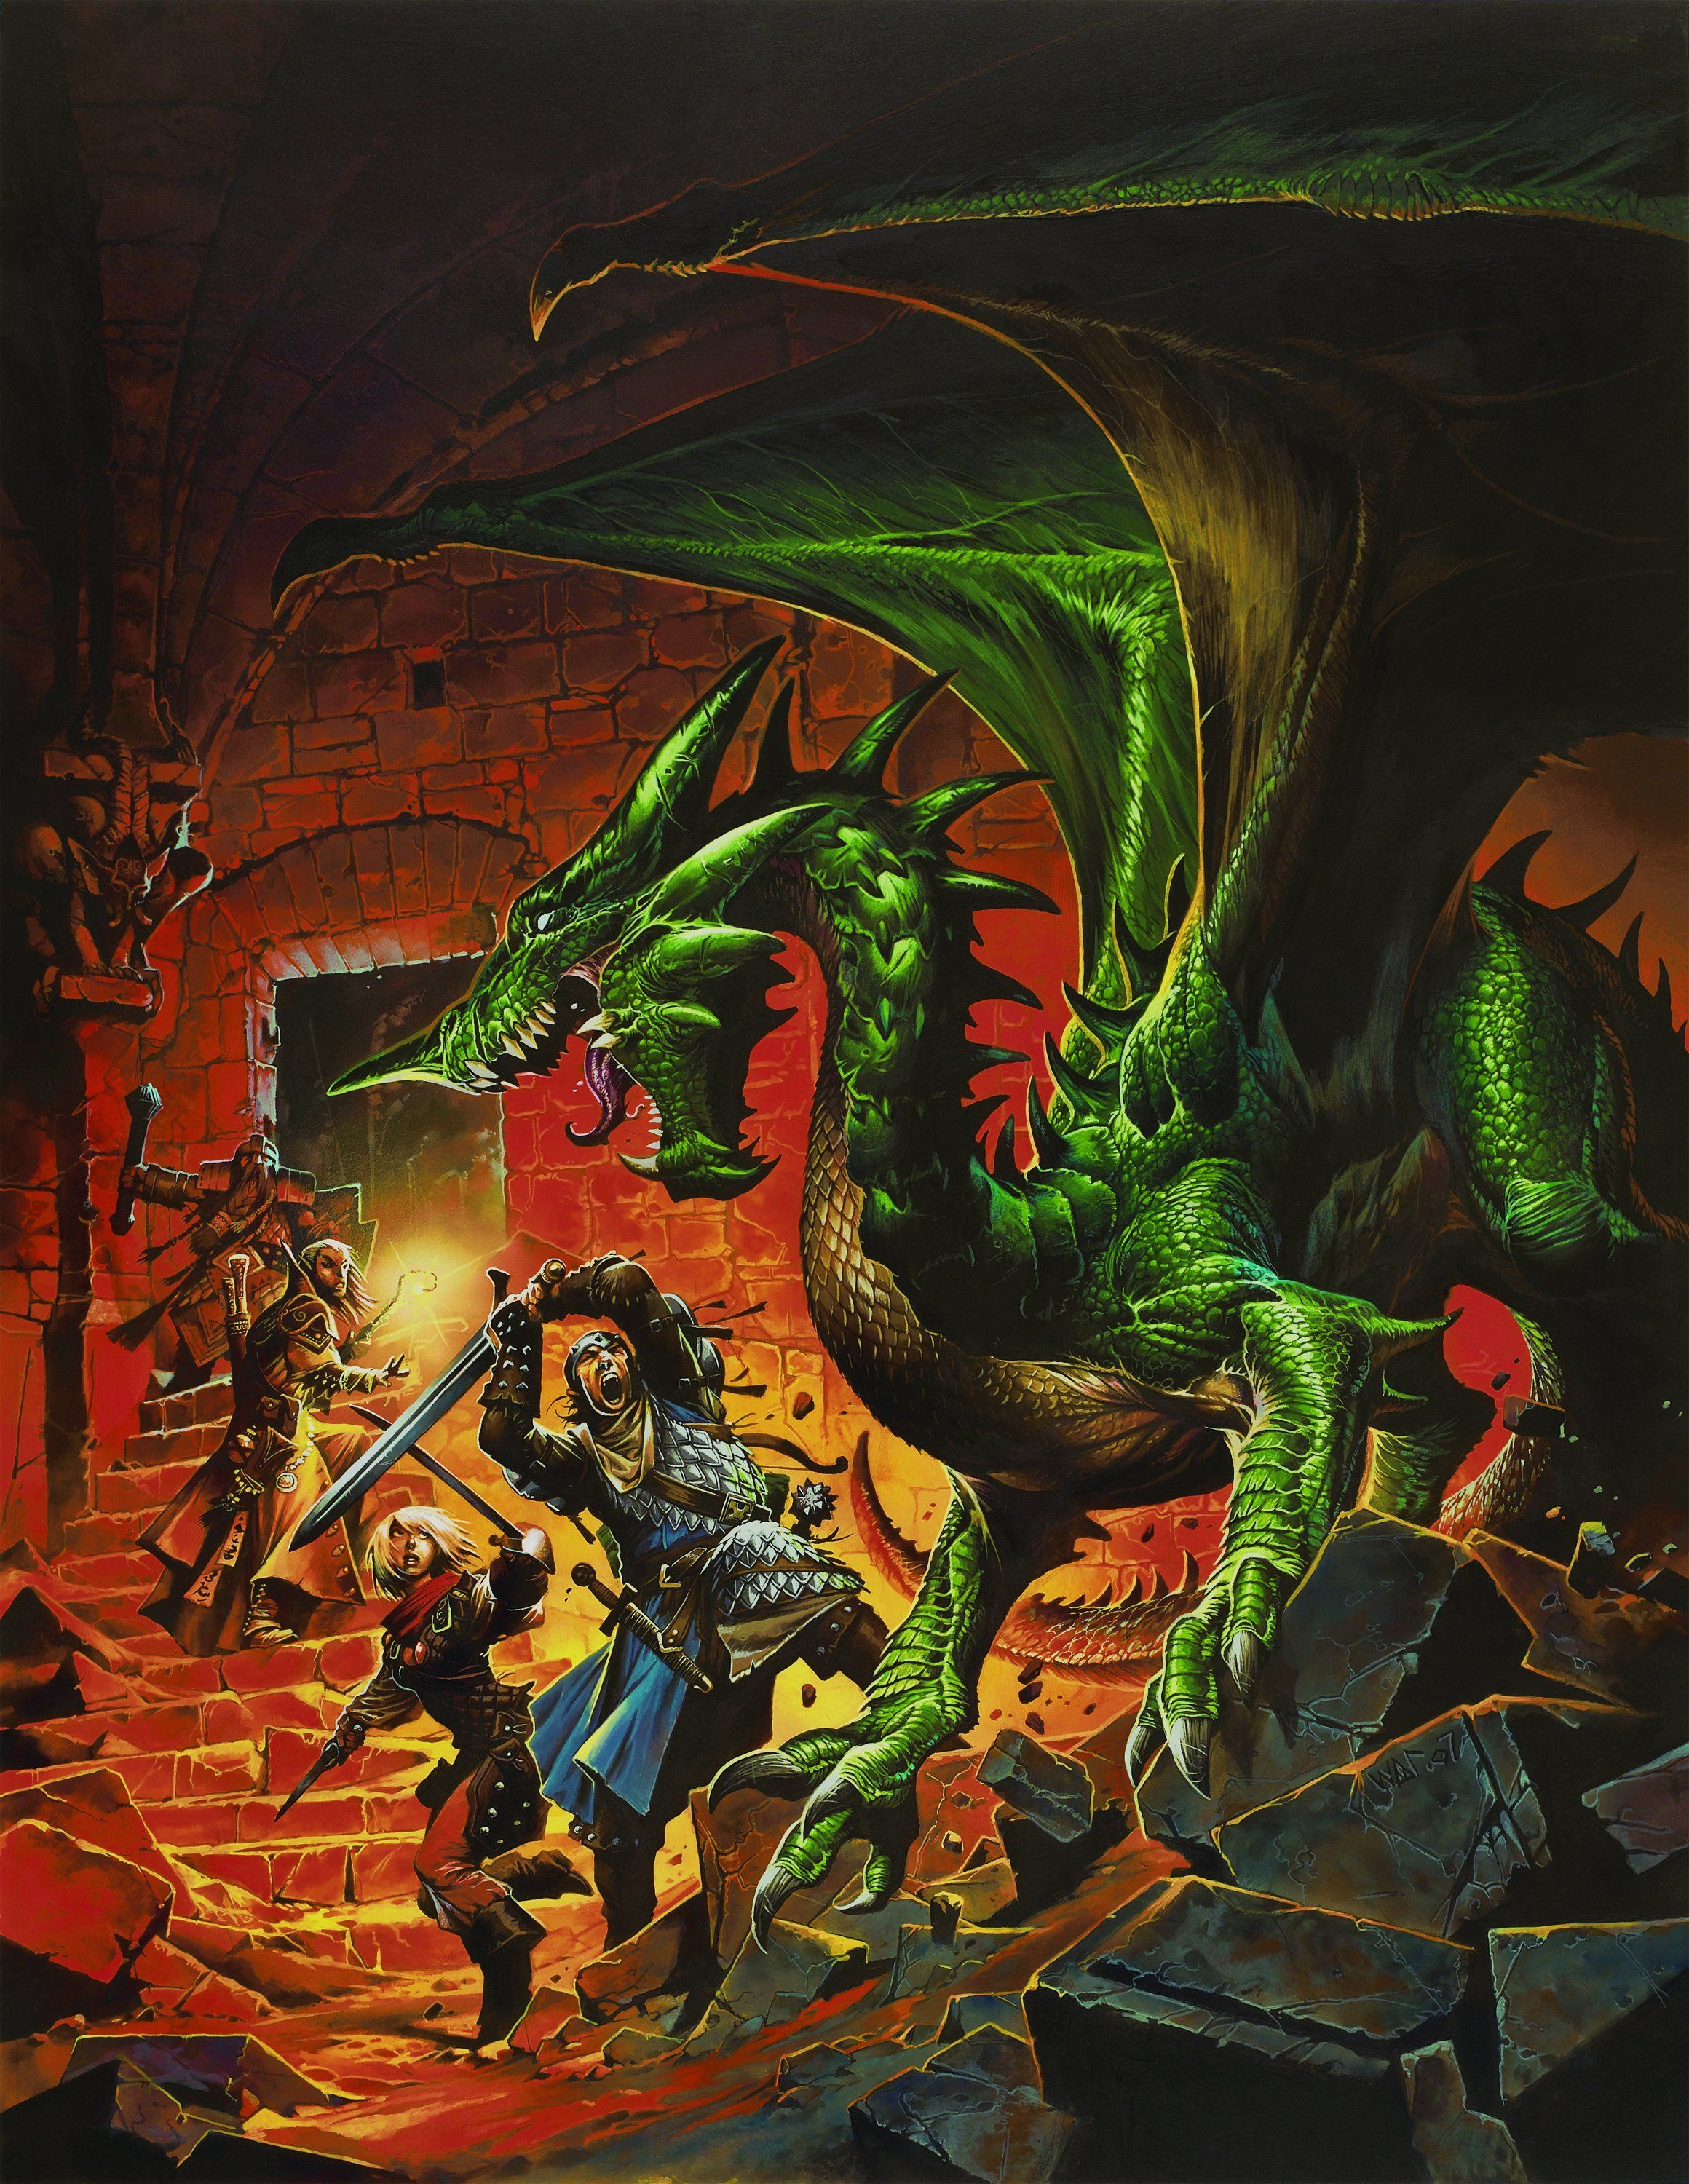 Dungeons and Dragons 4th Edition Dnd 4E Artwork - Dungeons and